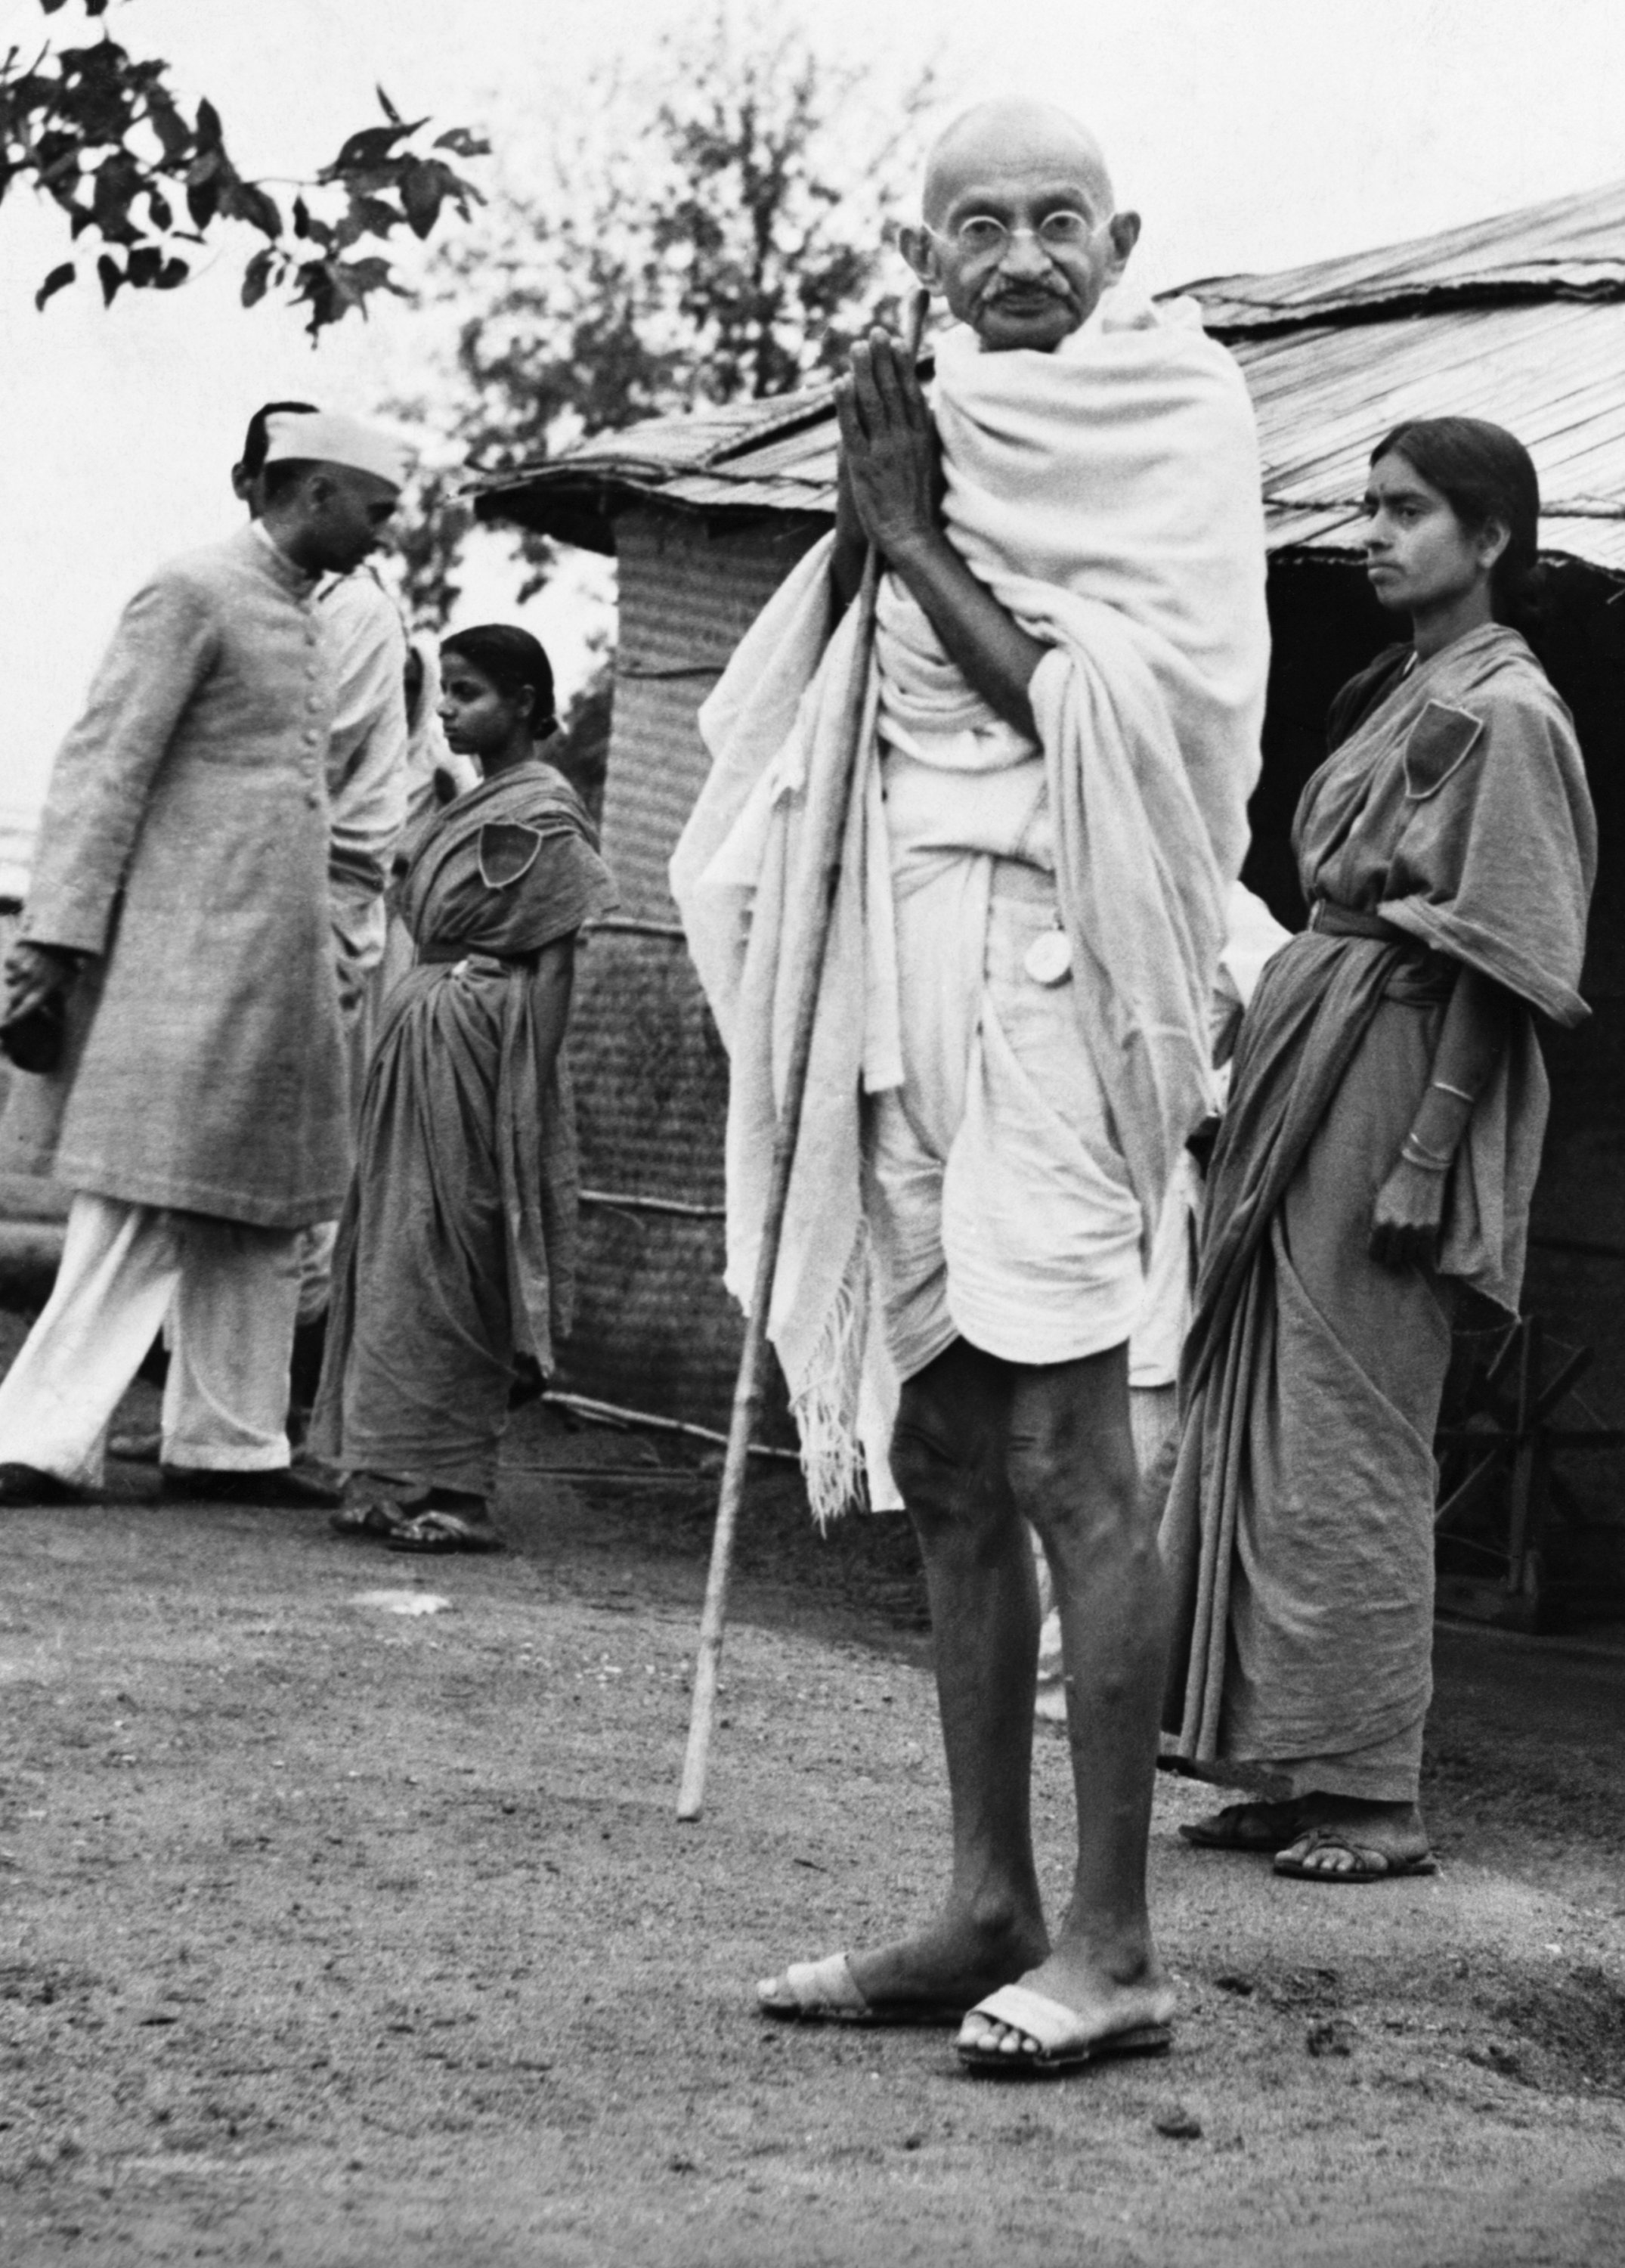 Mahatma Gandhi gives the namaste gesture, acknowledging the greetings of supporters, India, March 25, 1940. (Photo by Getty Images)